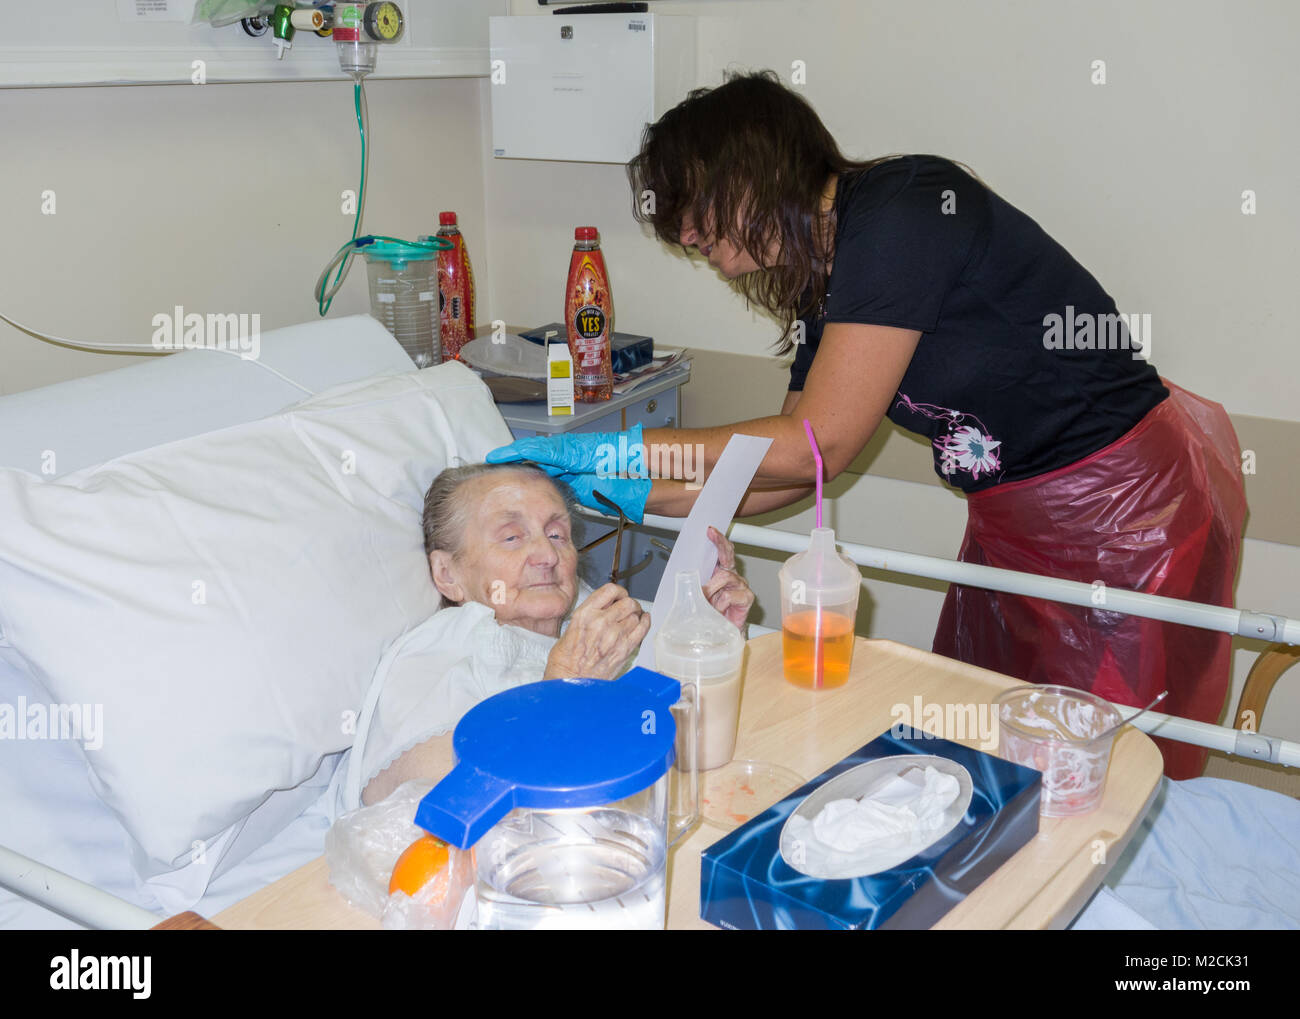 Elderly patient in her nineties diagnosed with cancer reading lunch menu in NHS hospital in England as female relative - Stock Image